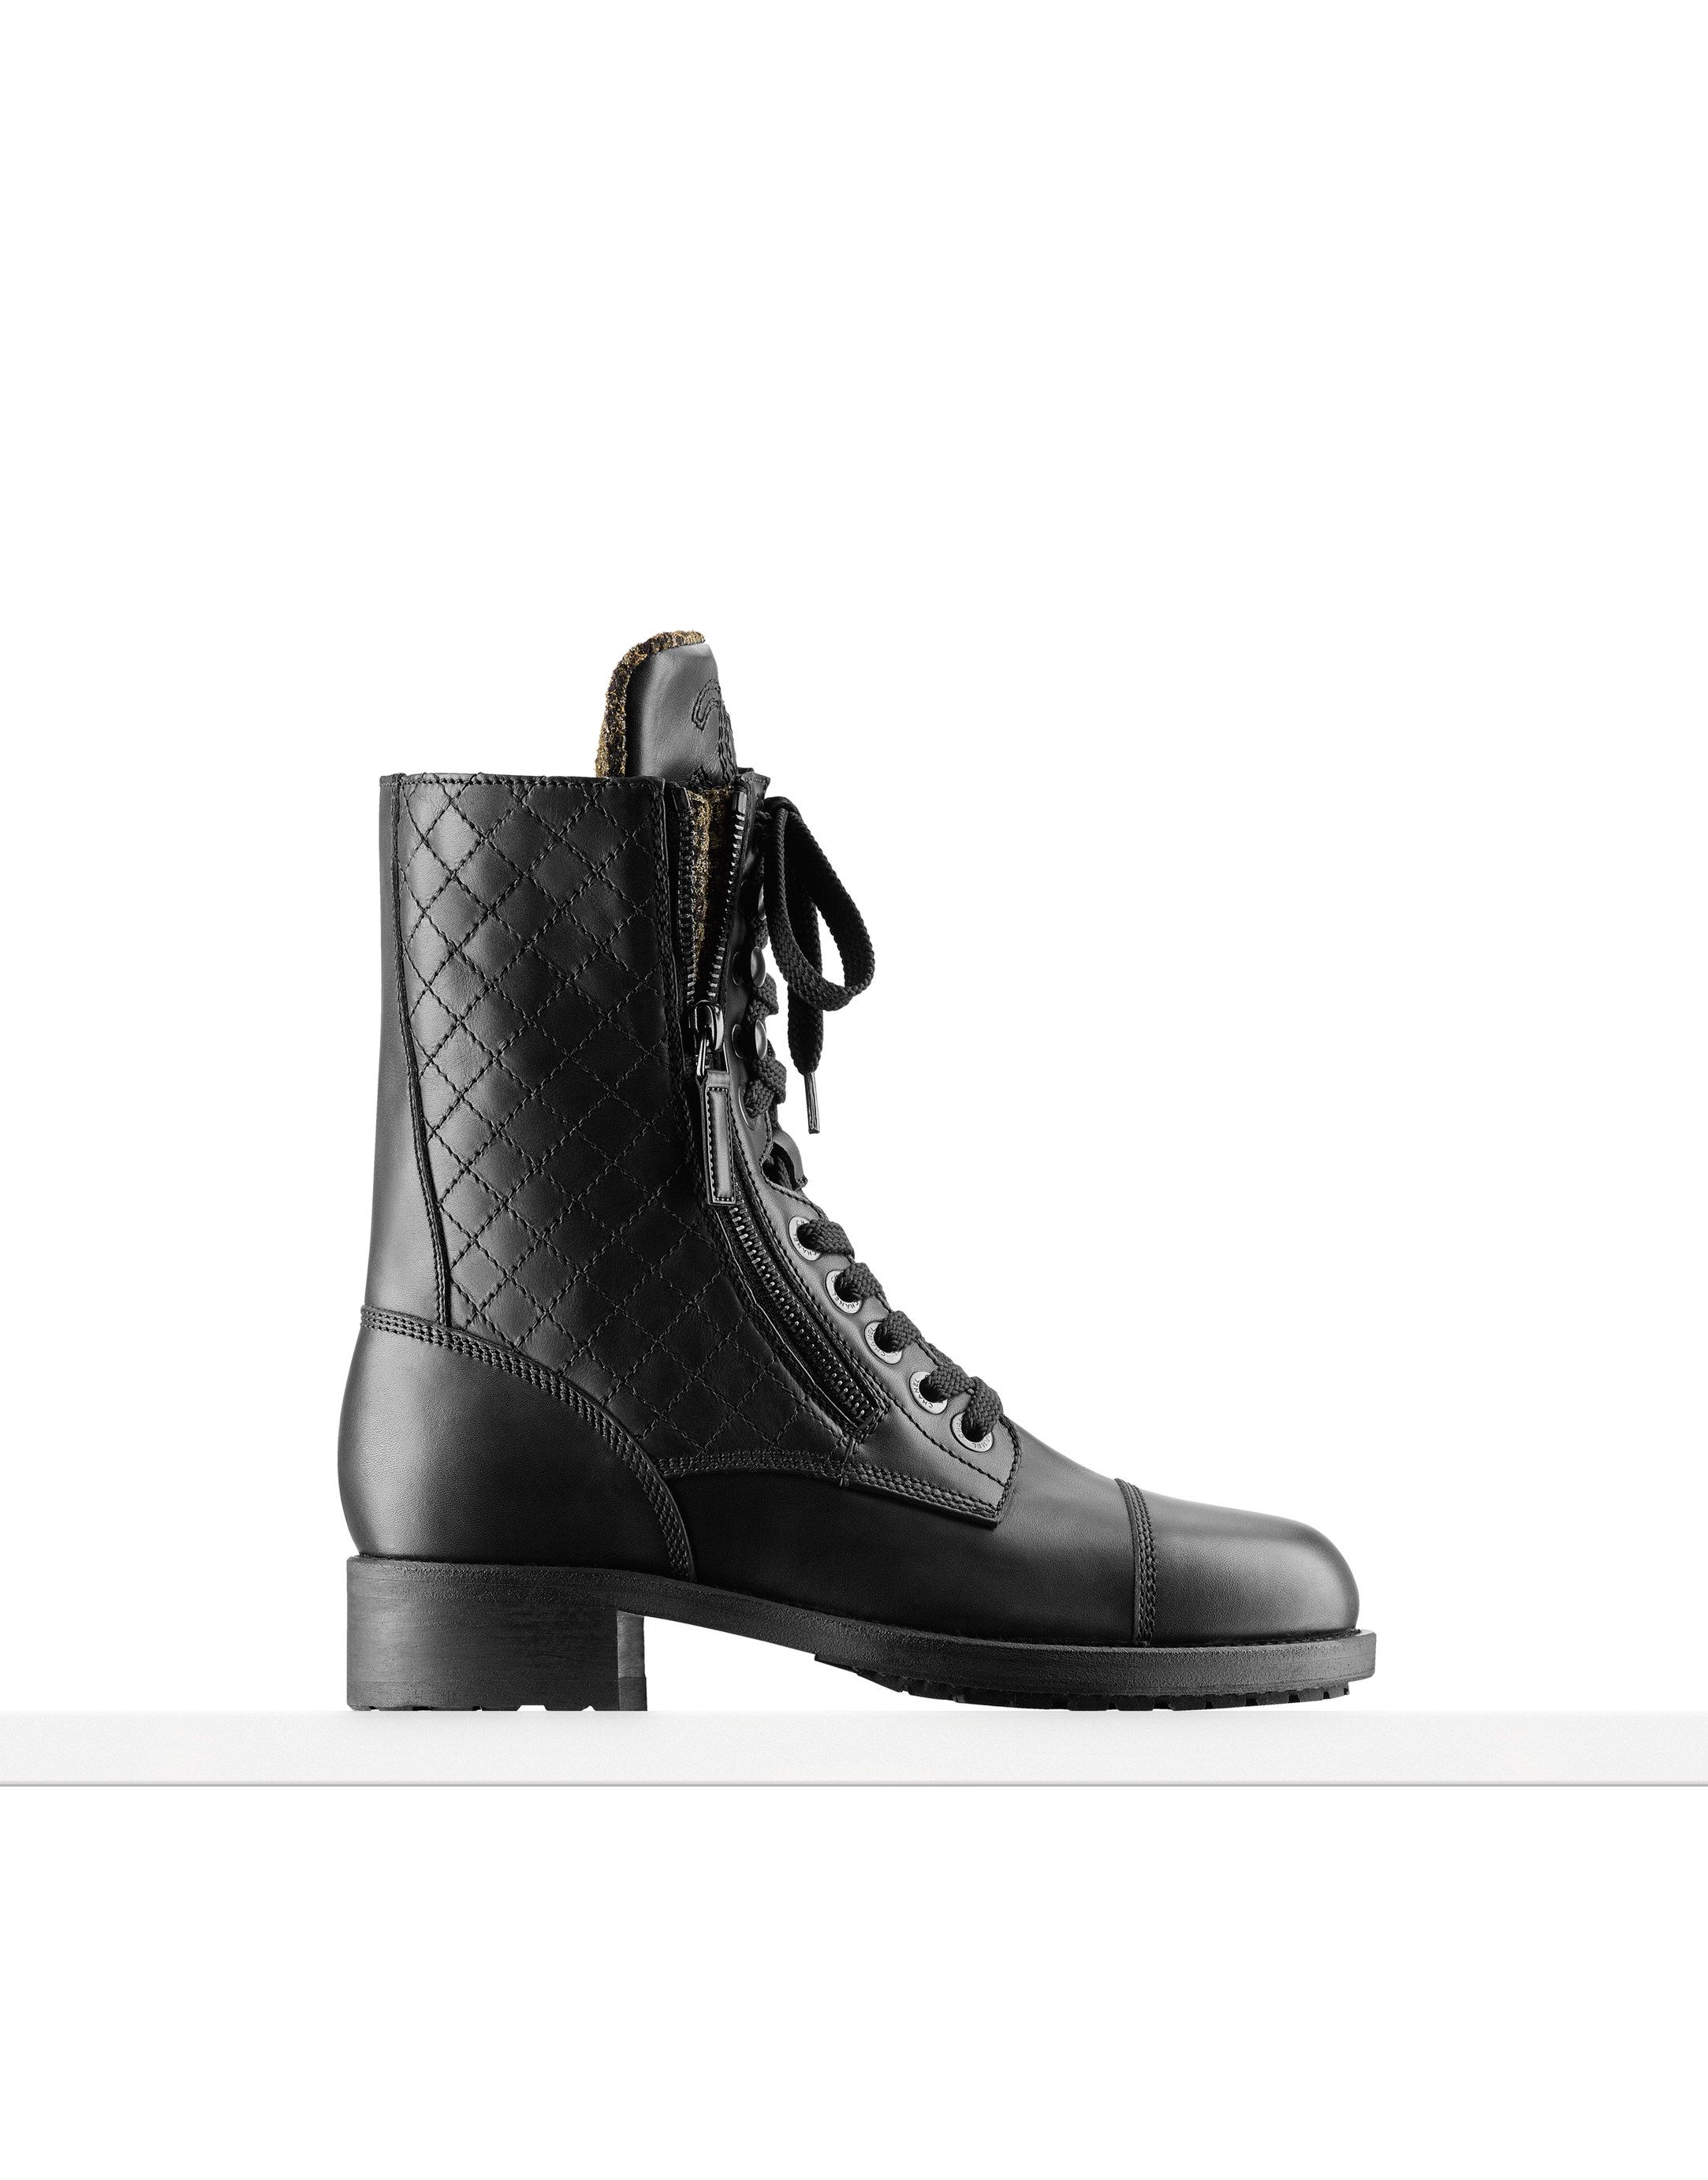 chanel Calfskin and tweed high boots   CHANEL in 2019   Boots, Shoes ... 5b46852992e